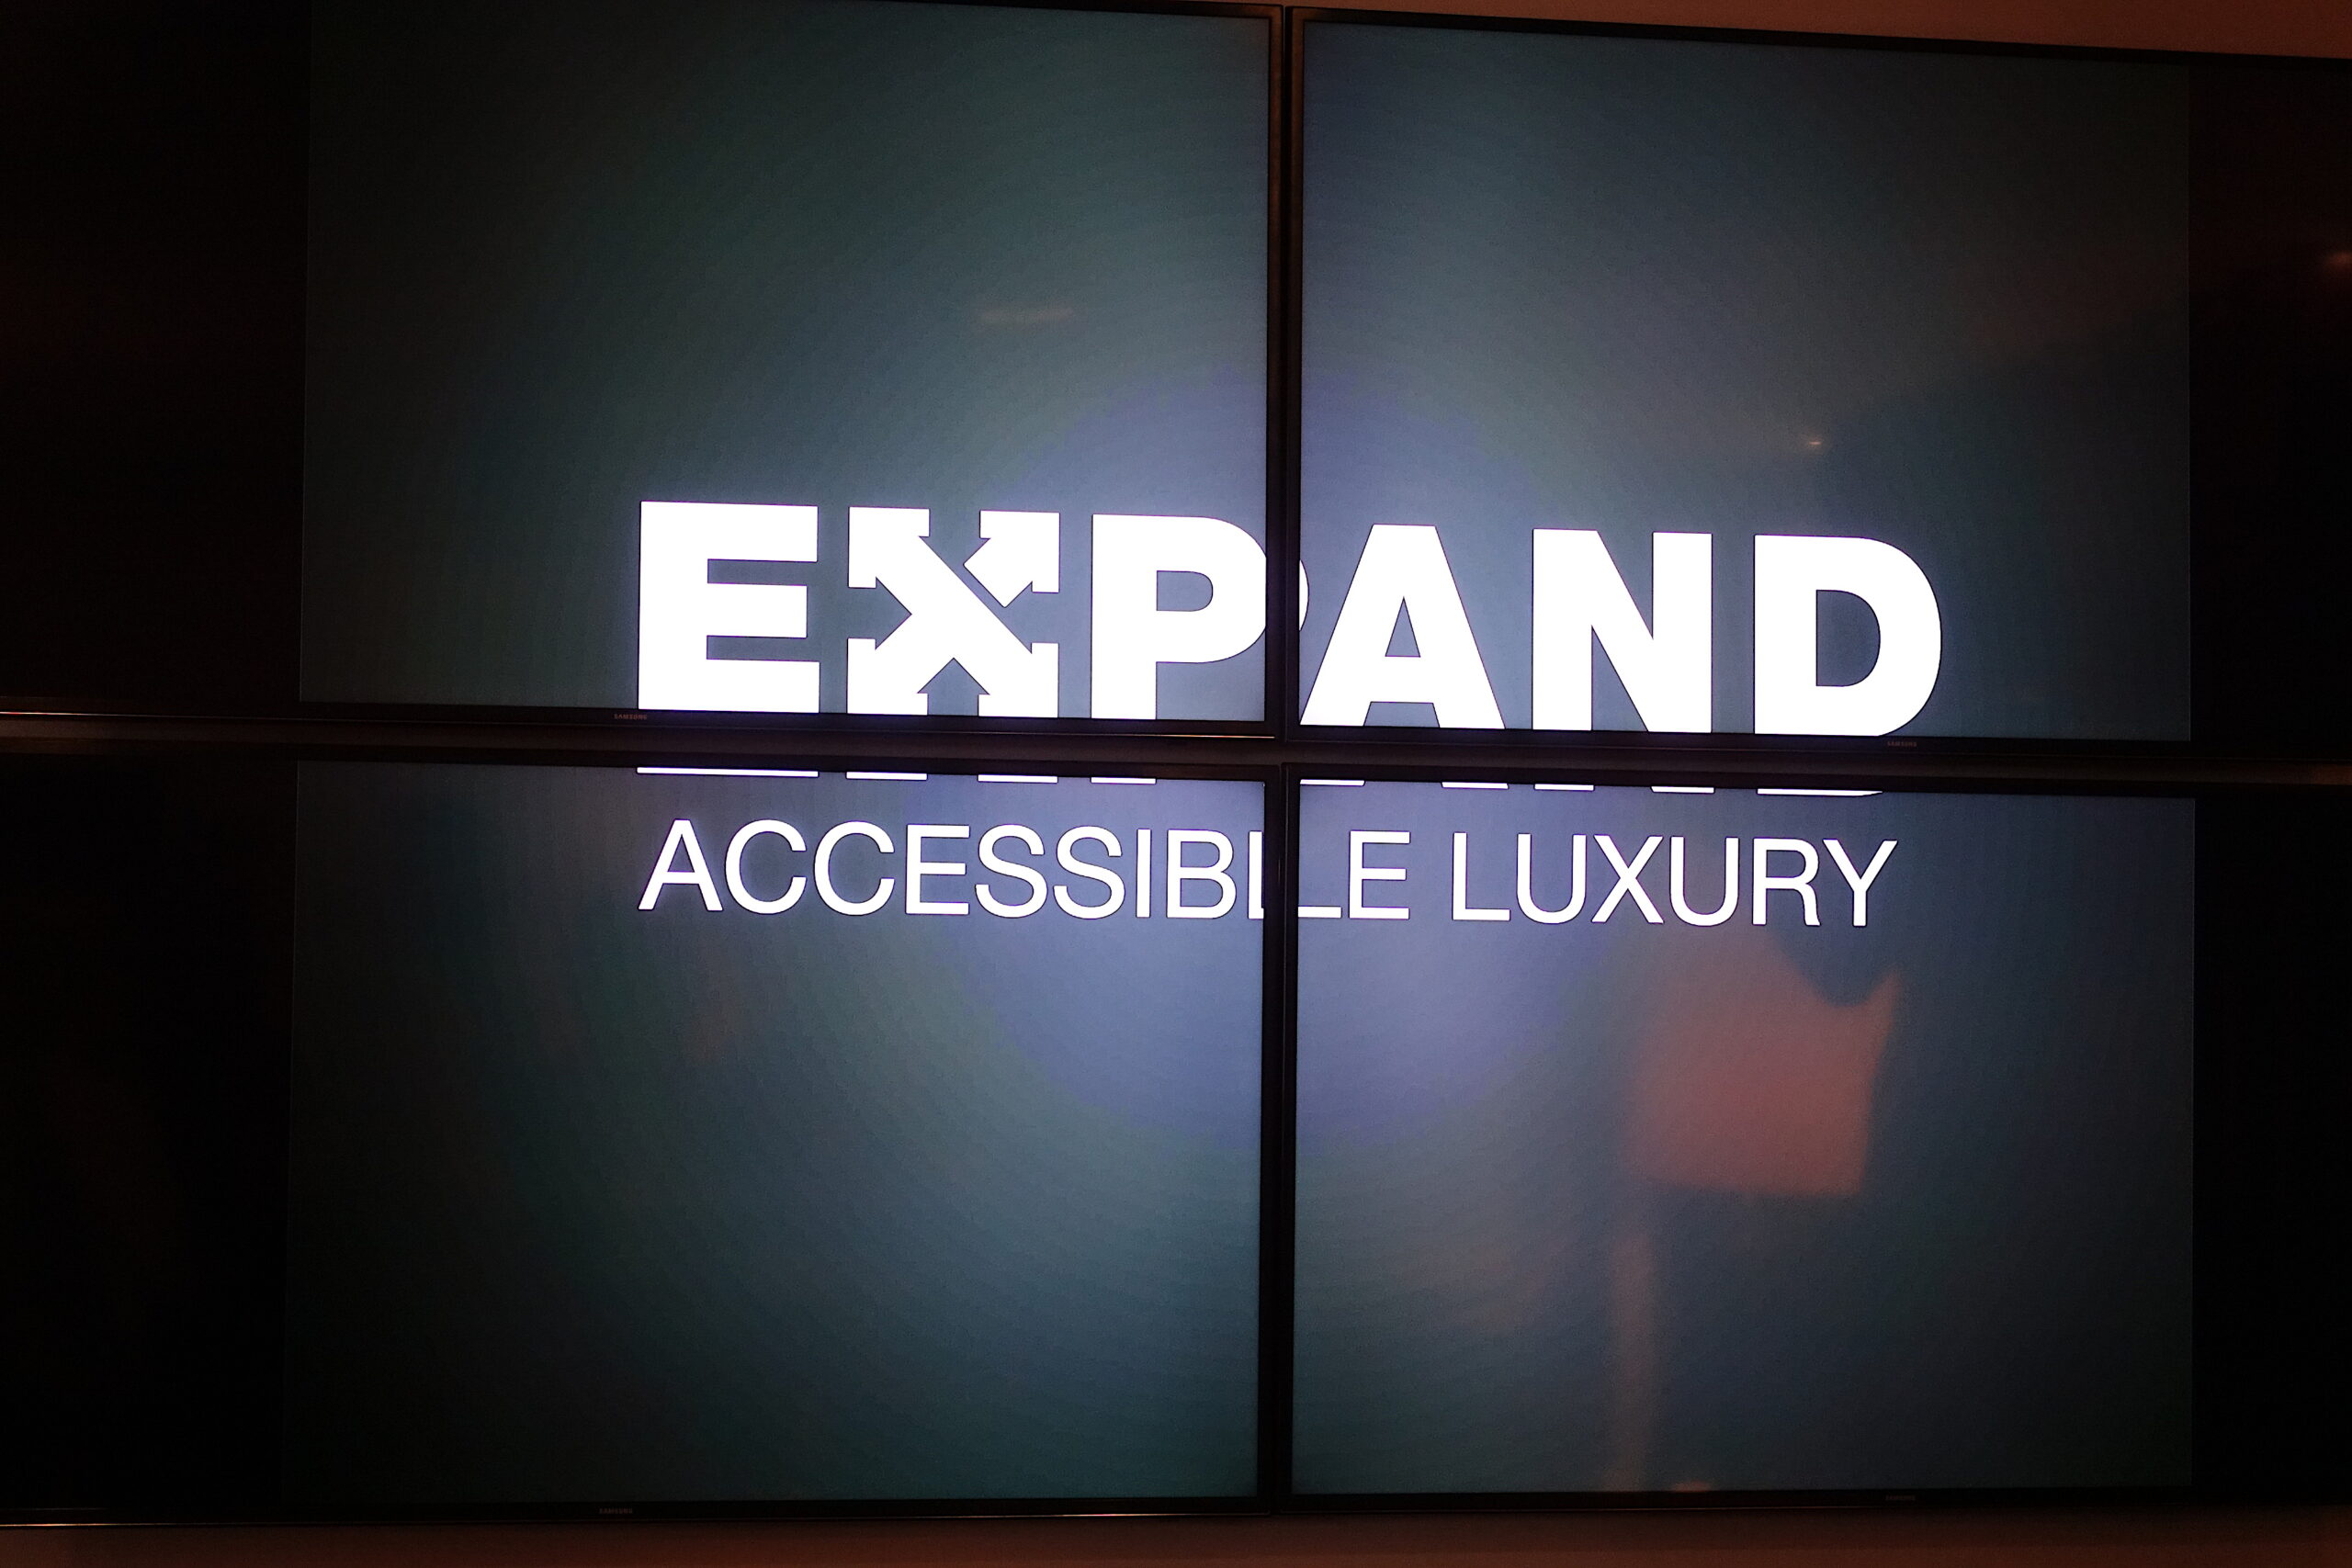 The objective now is: To expand accessible luxury.